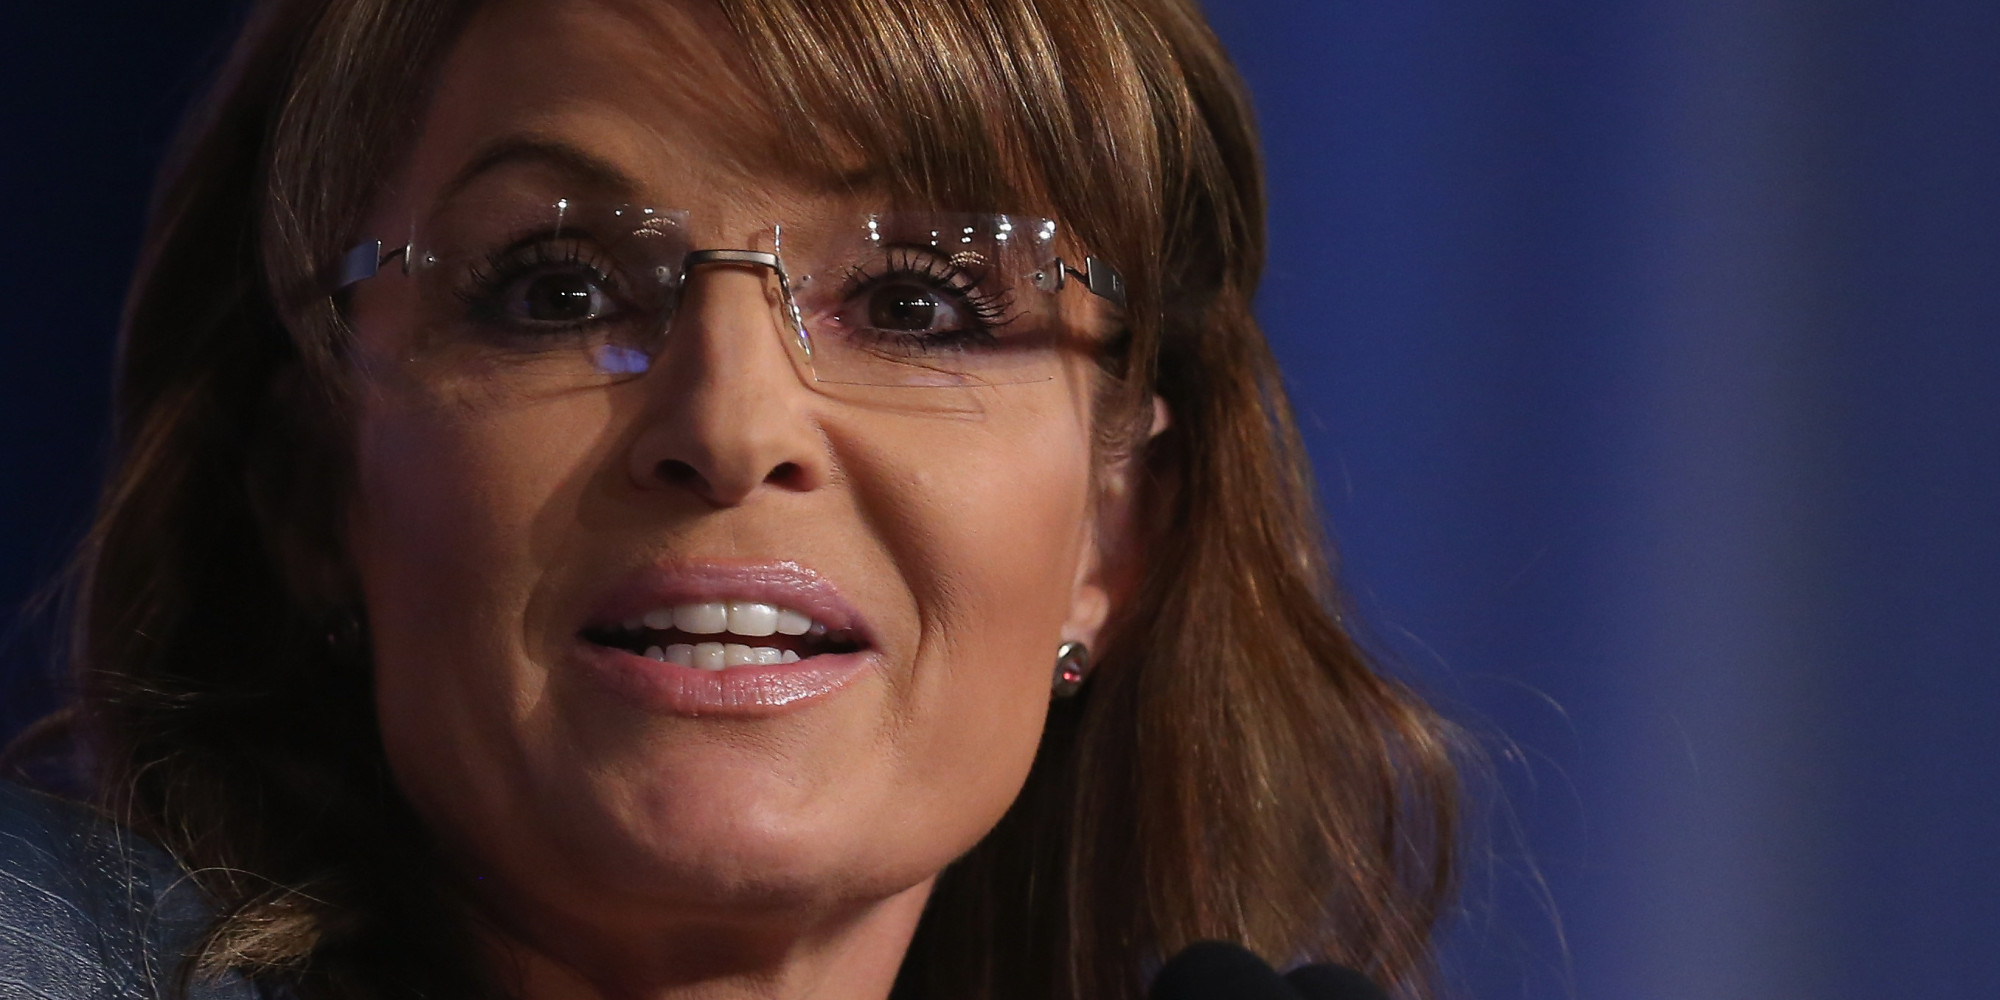 Sarah Palin Photos Of Son Stepping On Dog Trigger Online